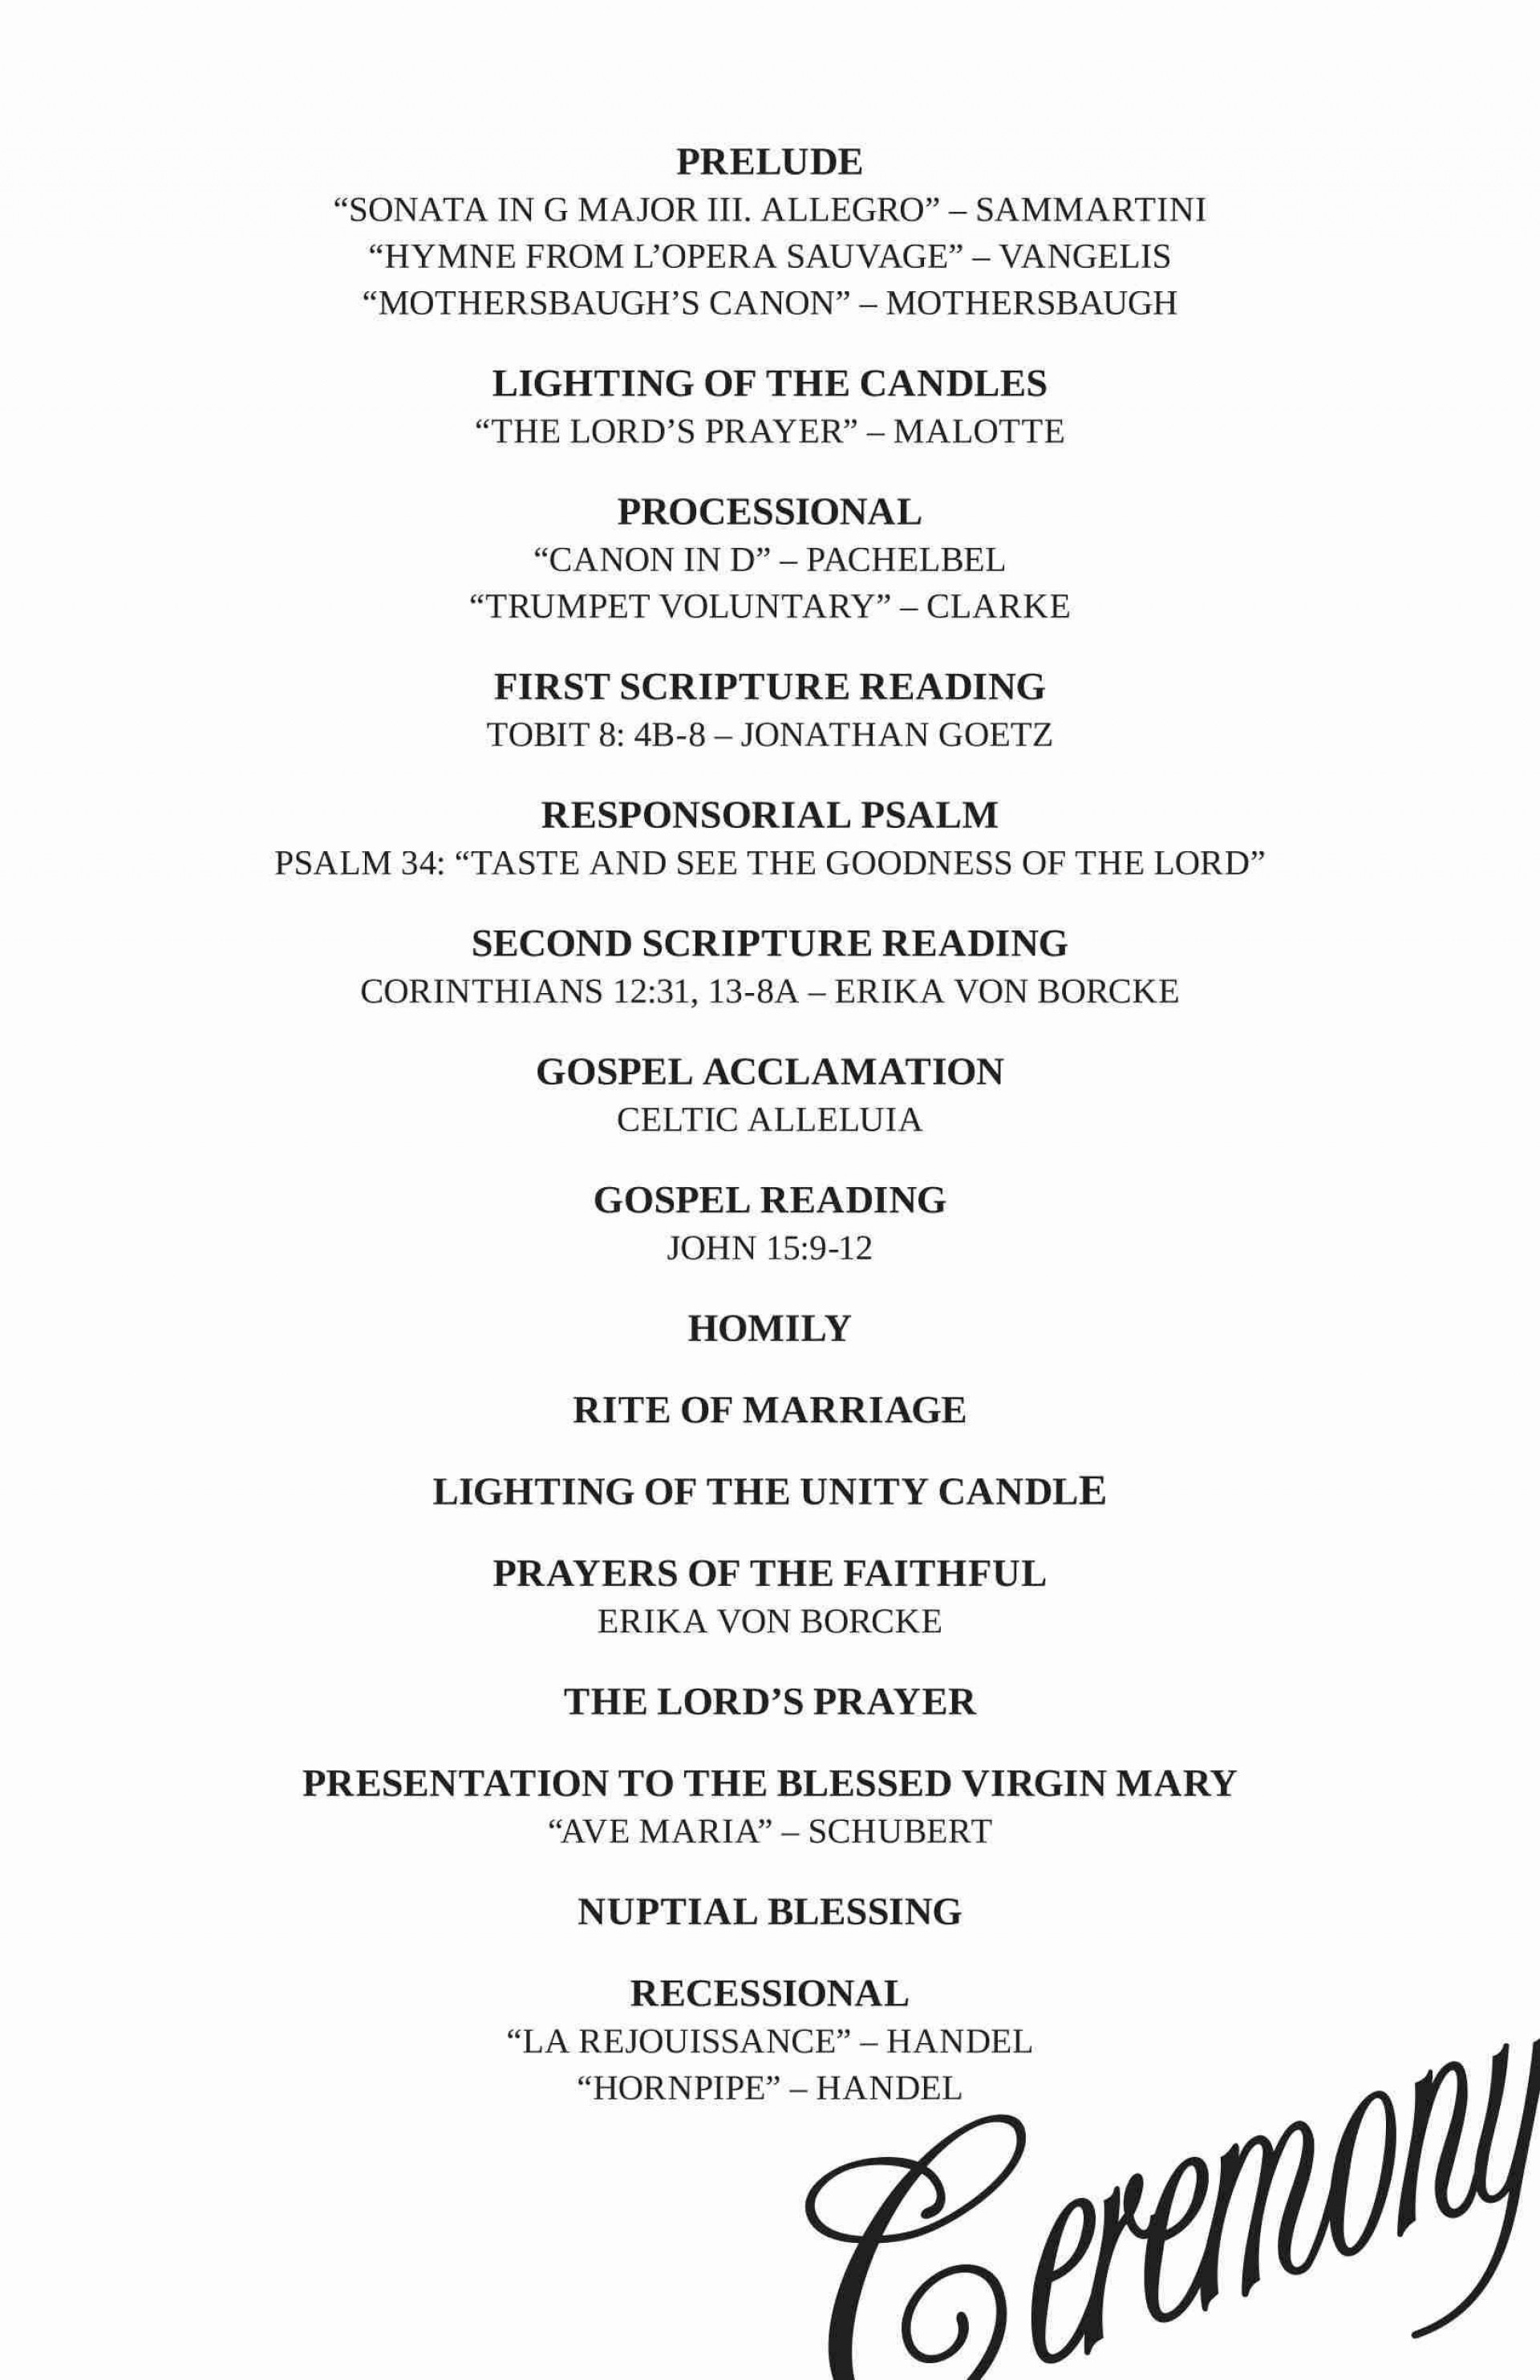 003 Stunning Wedding Reception Programme Template Highest Quality  Program Microsoft Word Free Downloadable Pdf1920